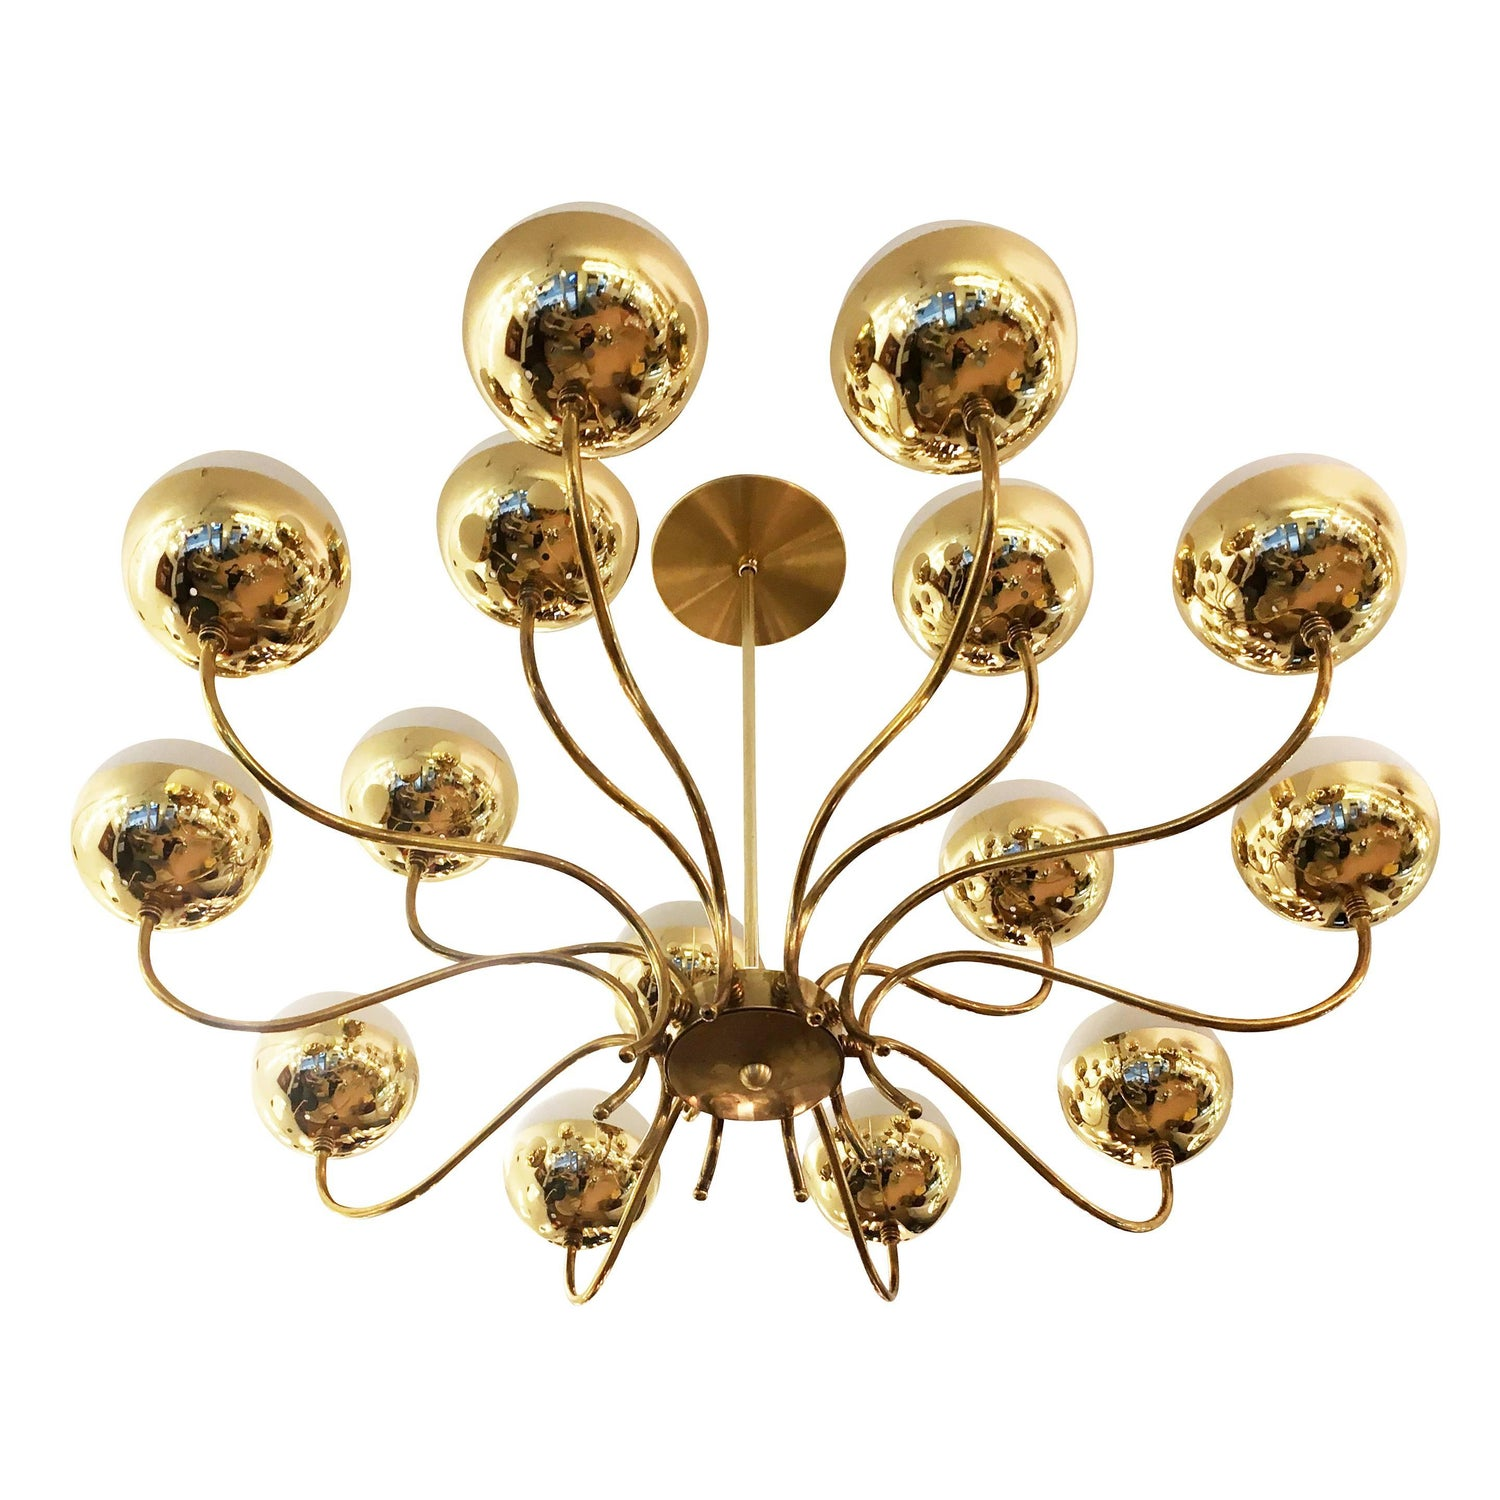 Mid century chandelier in the style of stilnovo for sale at 1stdibs aloadofball Gallery